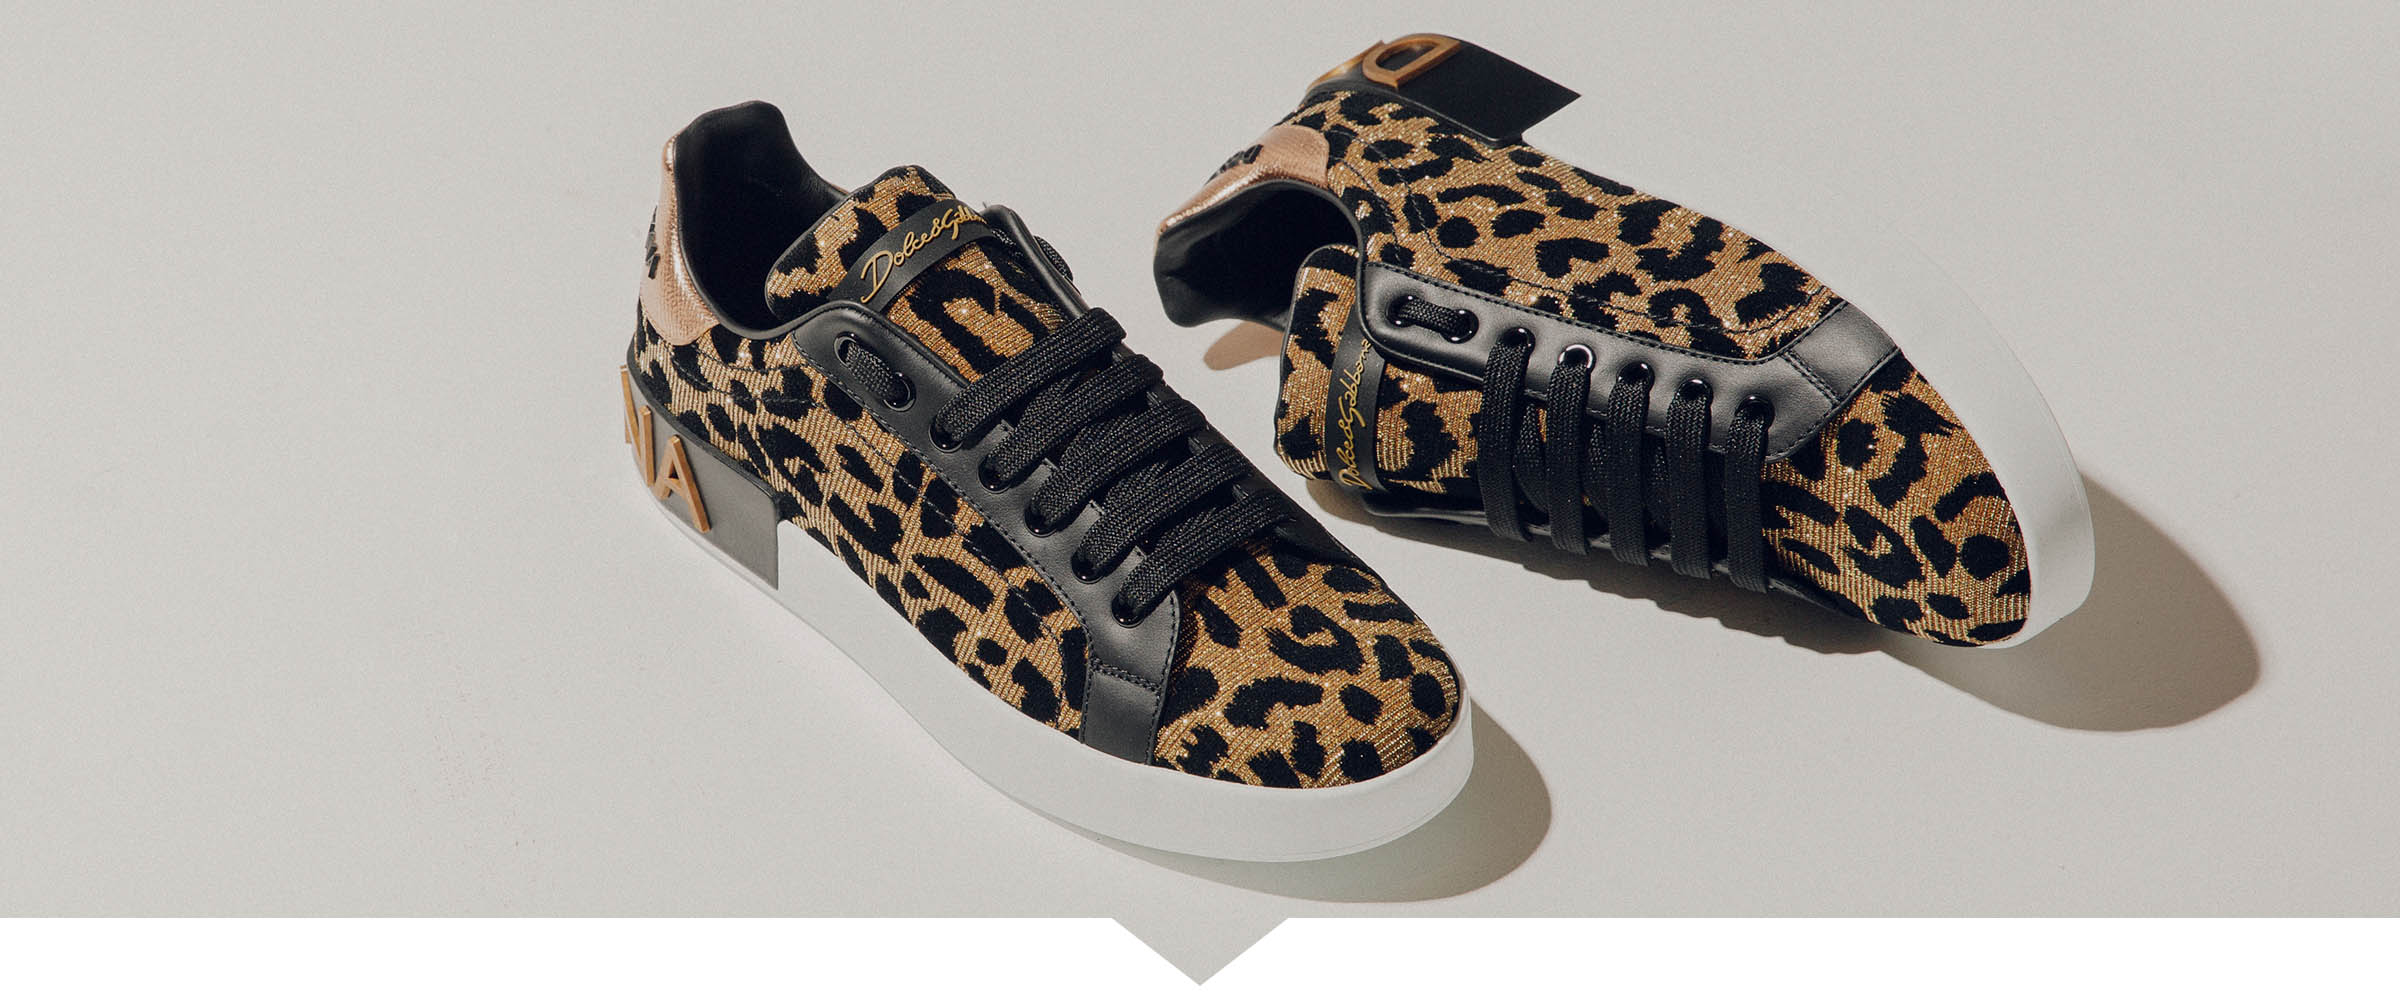 The Wishlist: The Animal Print Trend